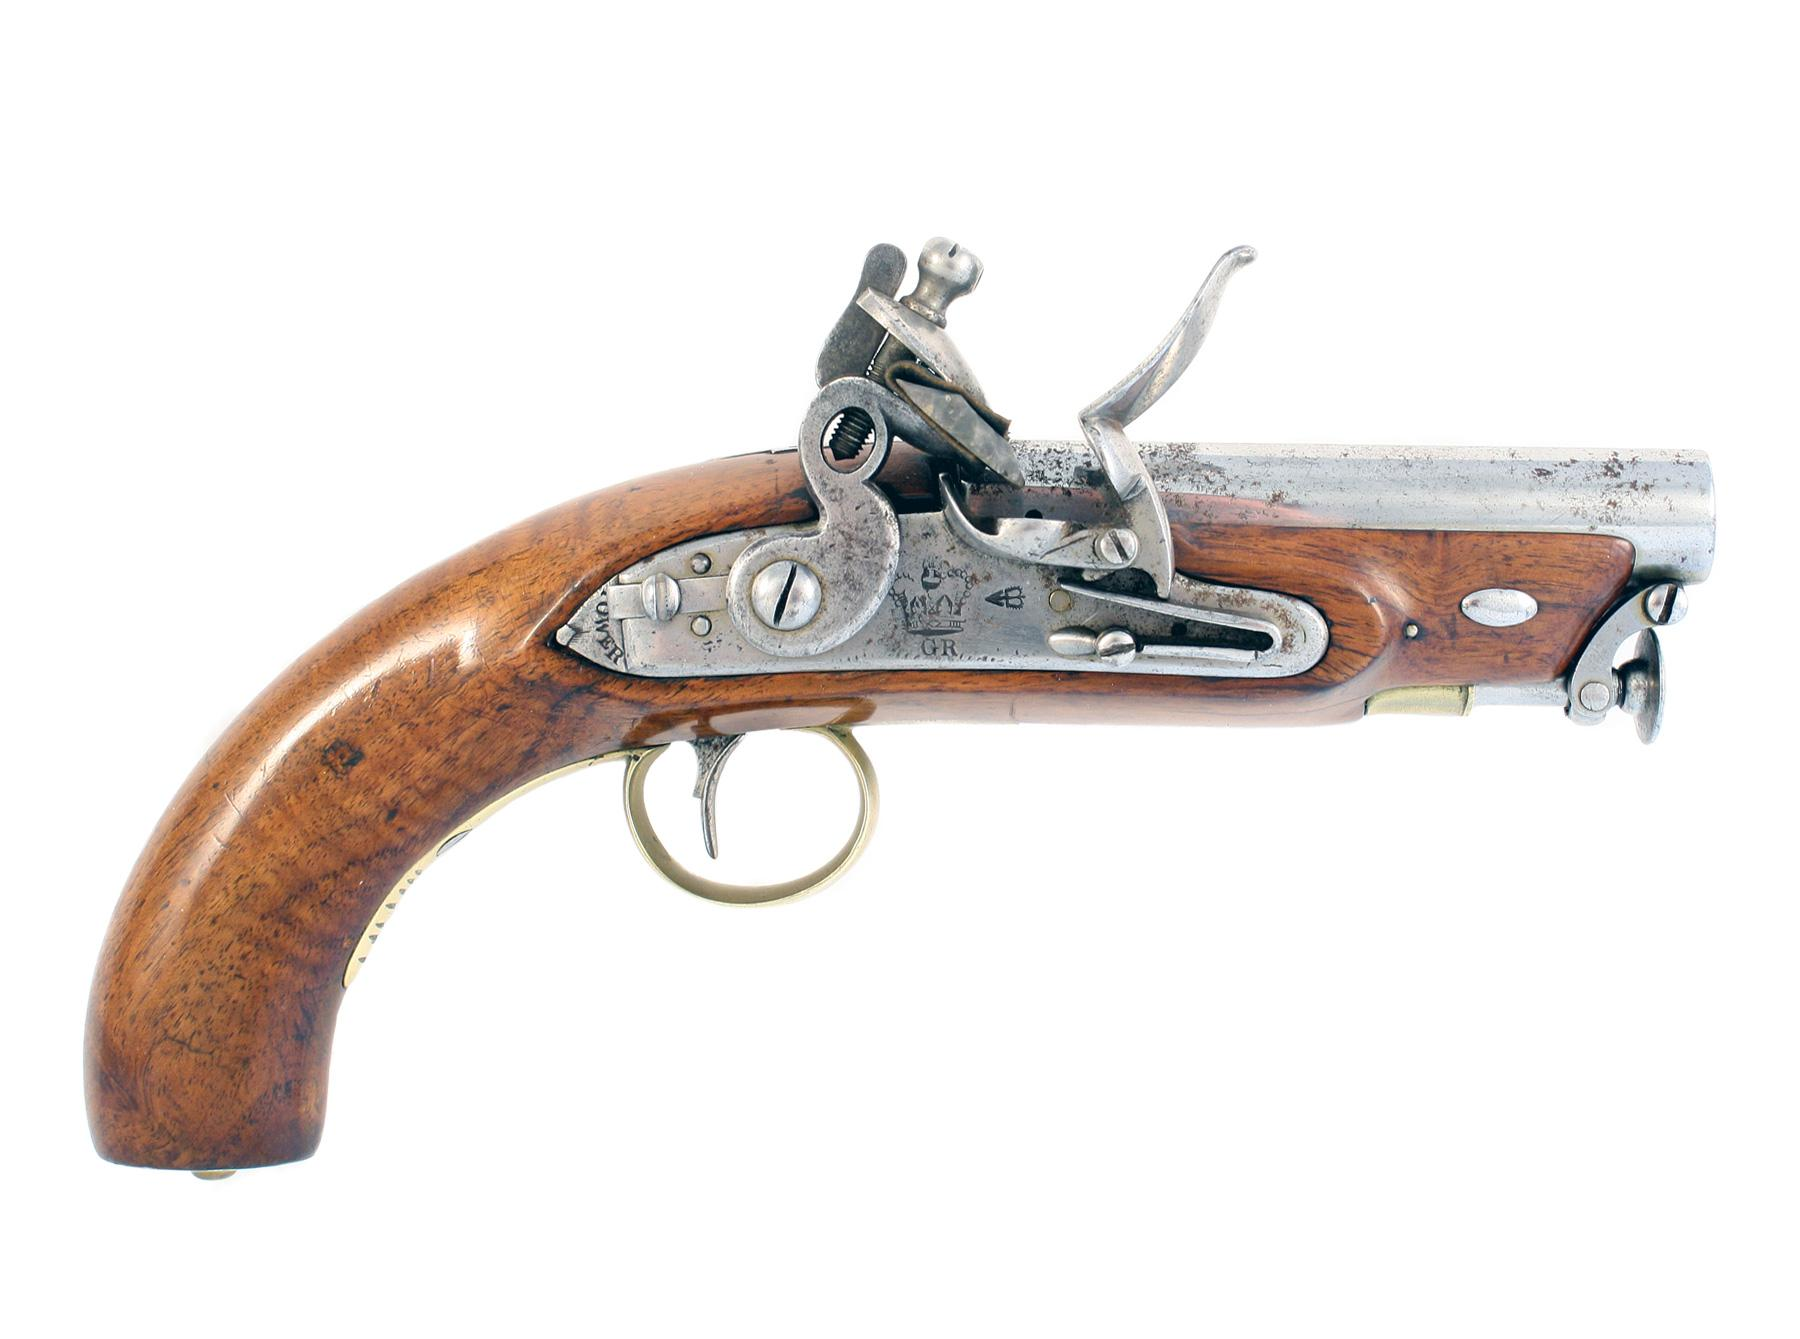 A Scarce Coast Guard & Customs Service Pistol